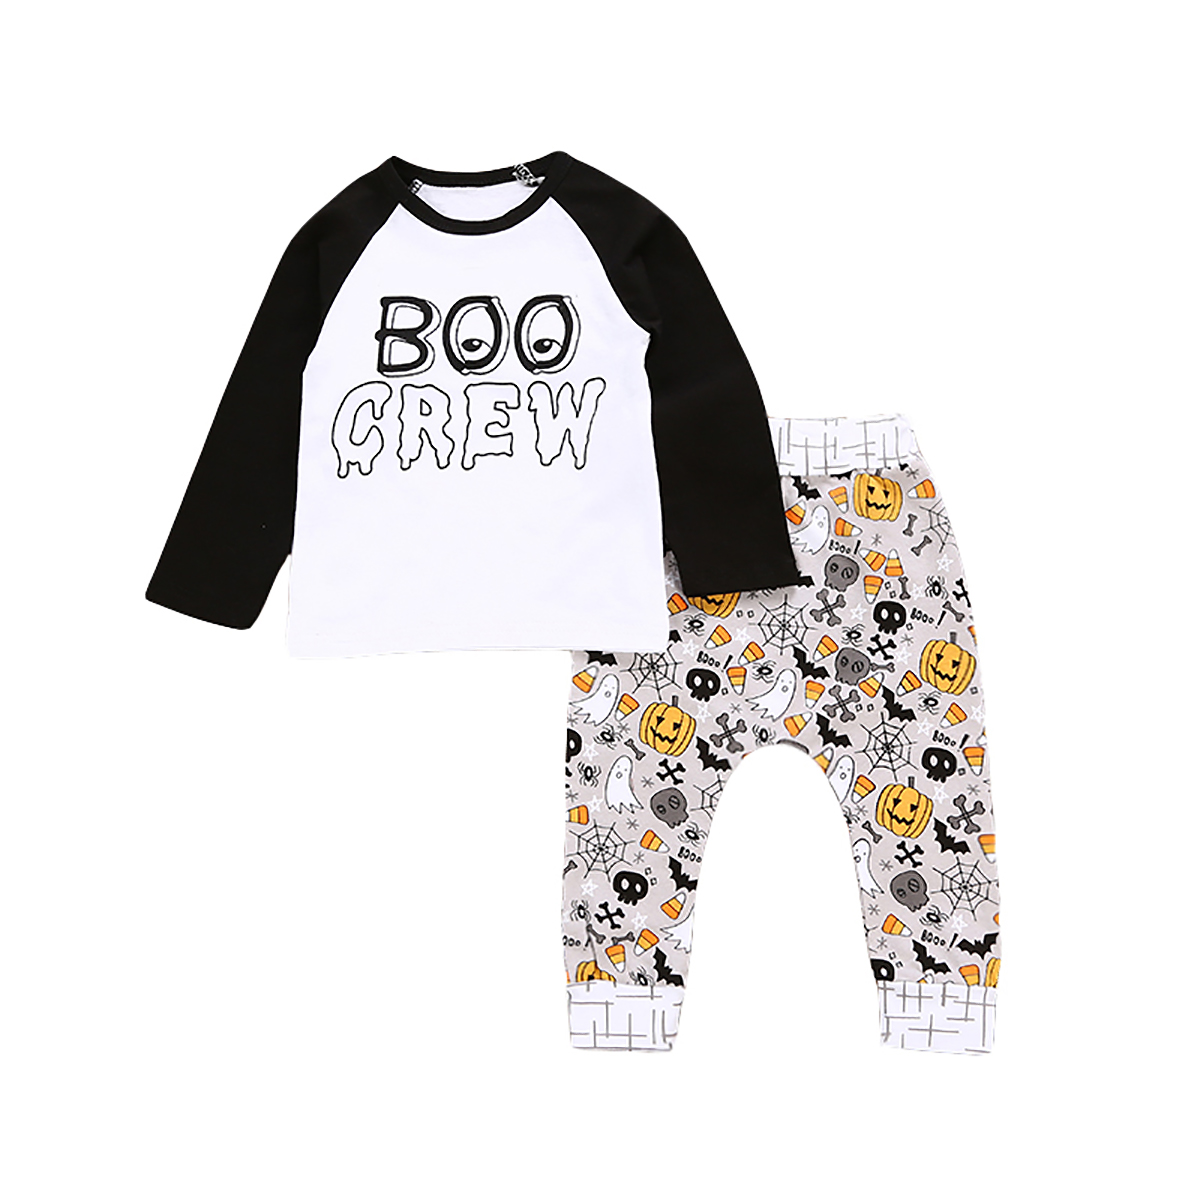 Toddler Infant Baby Boy Clothing Set Long Sleeve Tops T-shirts Pants Casual Clothes Outfits Set Baby Boys baby girl 1st birthday outfits short sleeve infant clothing sets lace romper dress headband shoe toddler tutu set baby s clothes